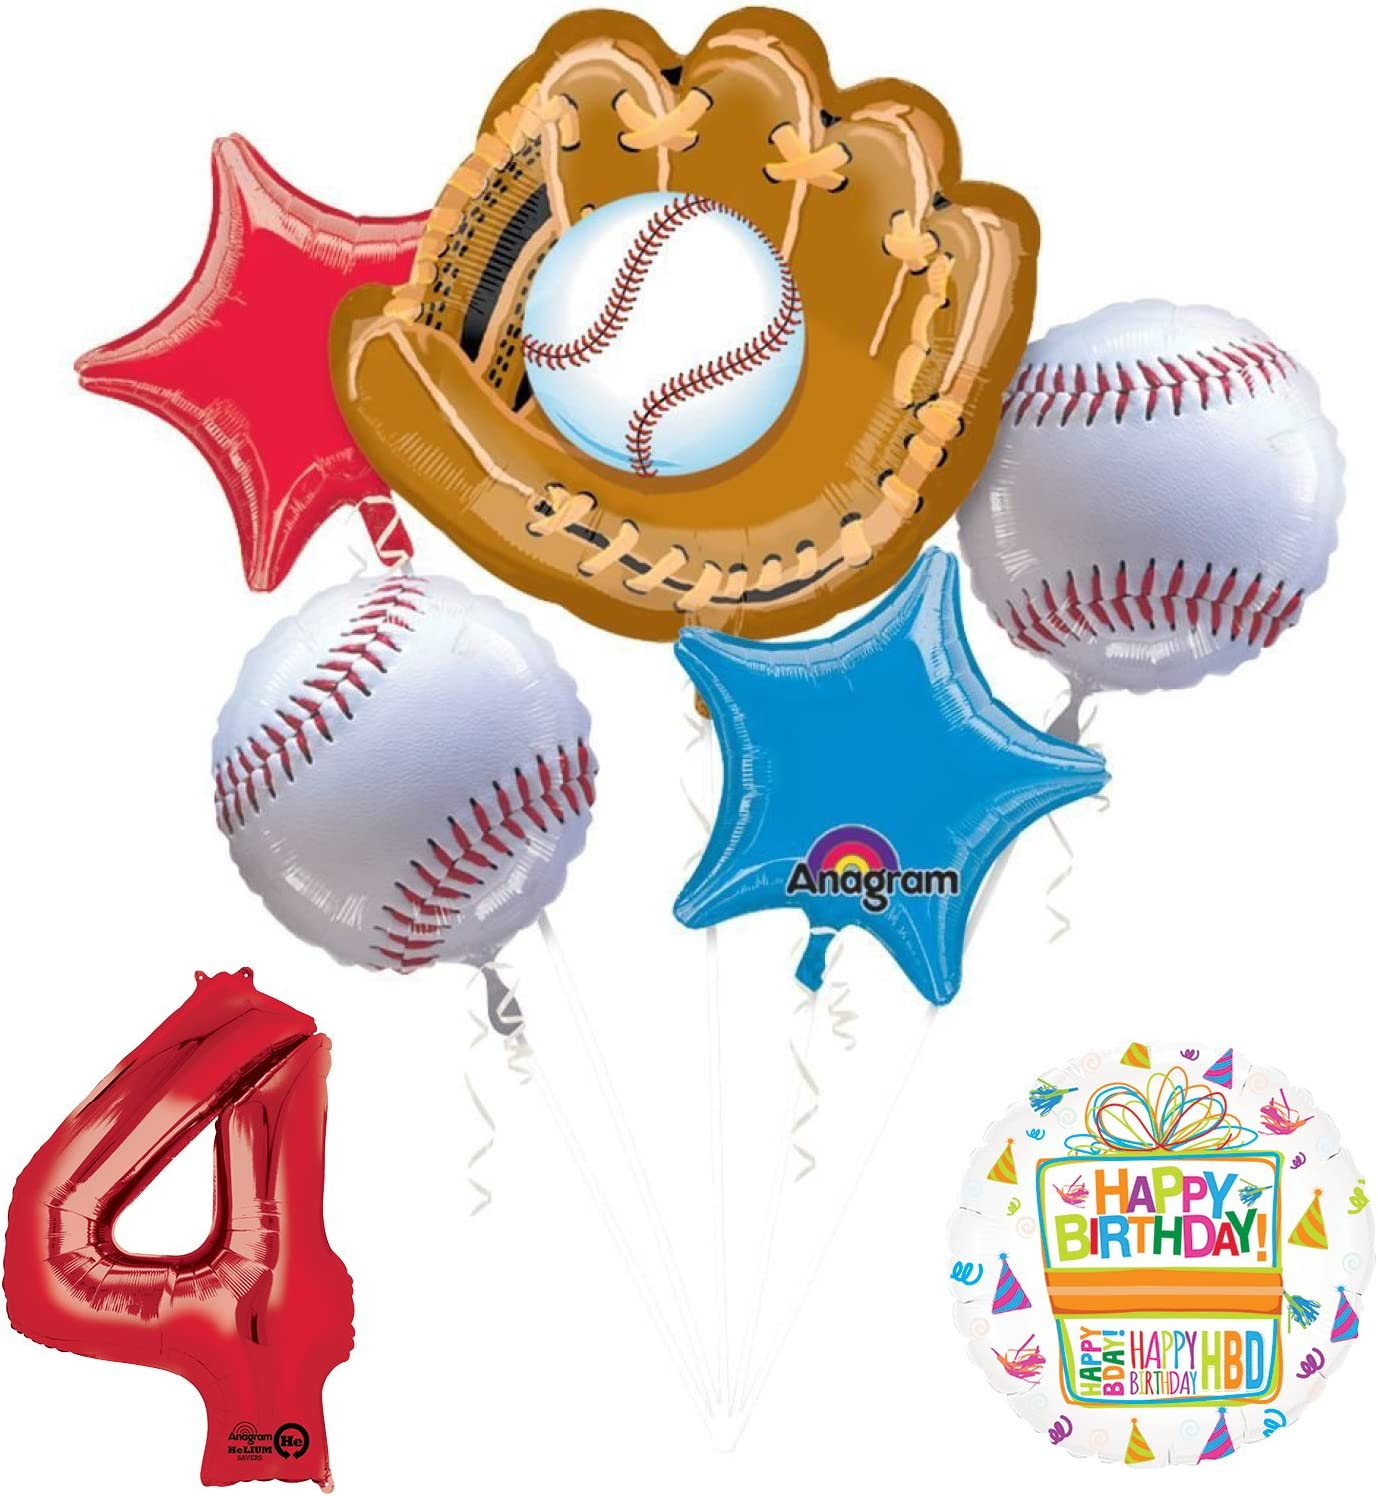 Baseball Player 5th Birthday Party Supplies Balloon Bouquet Decorations